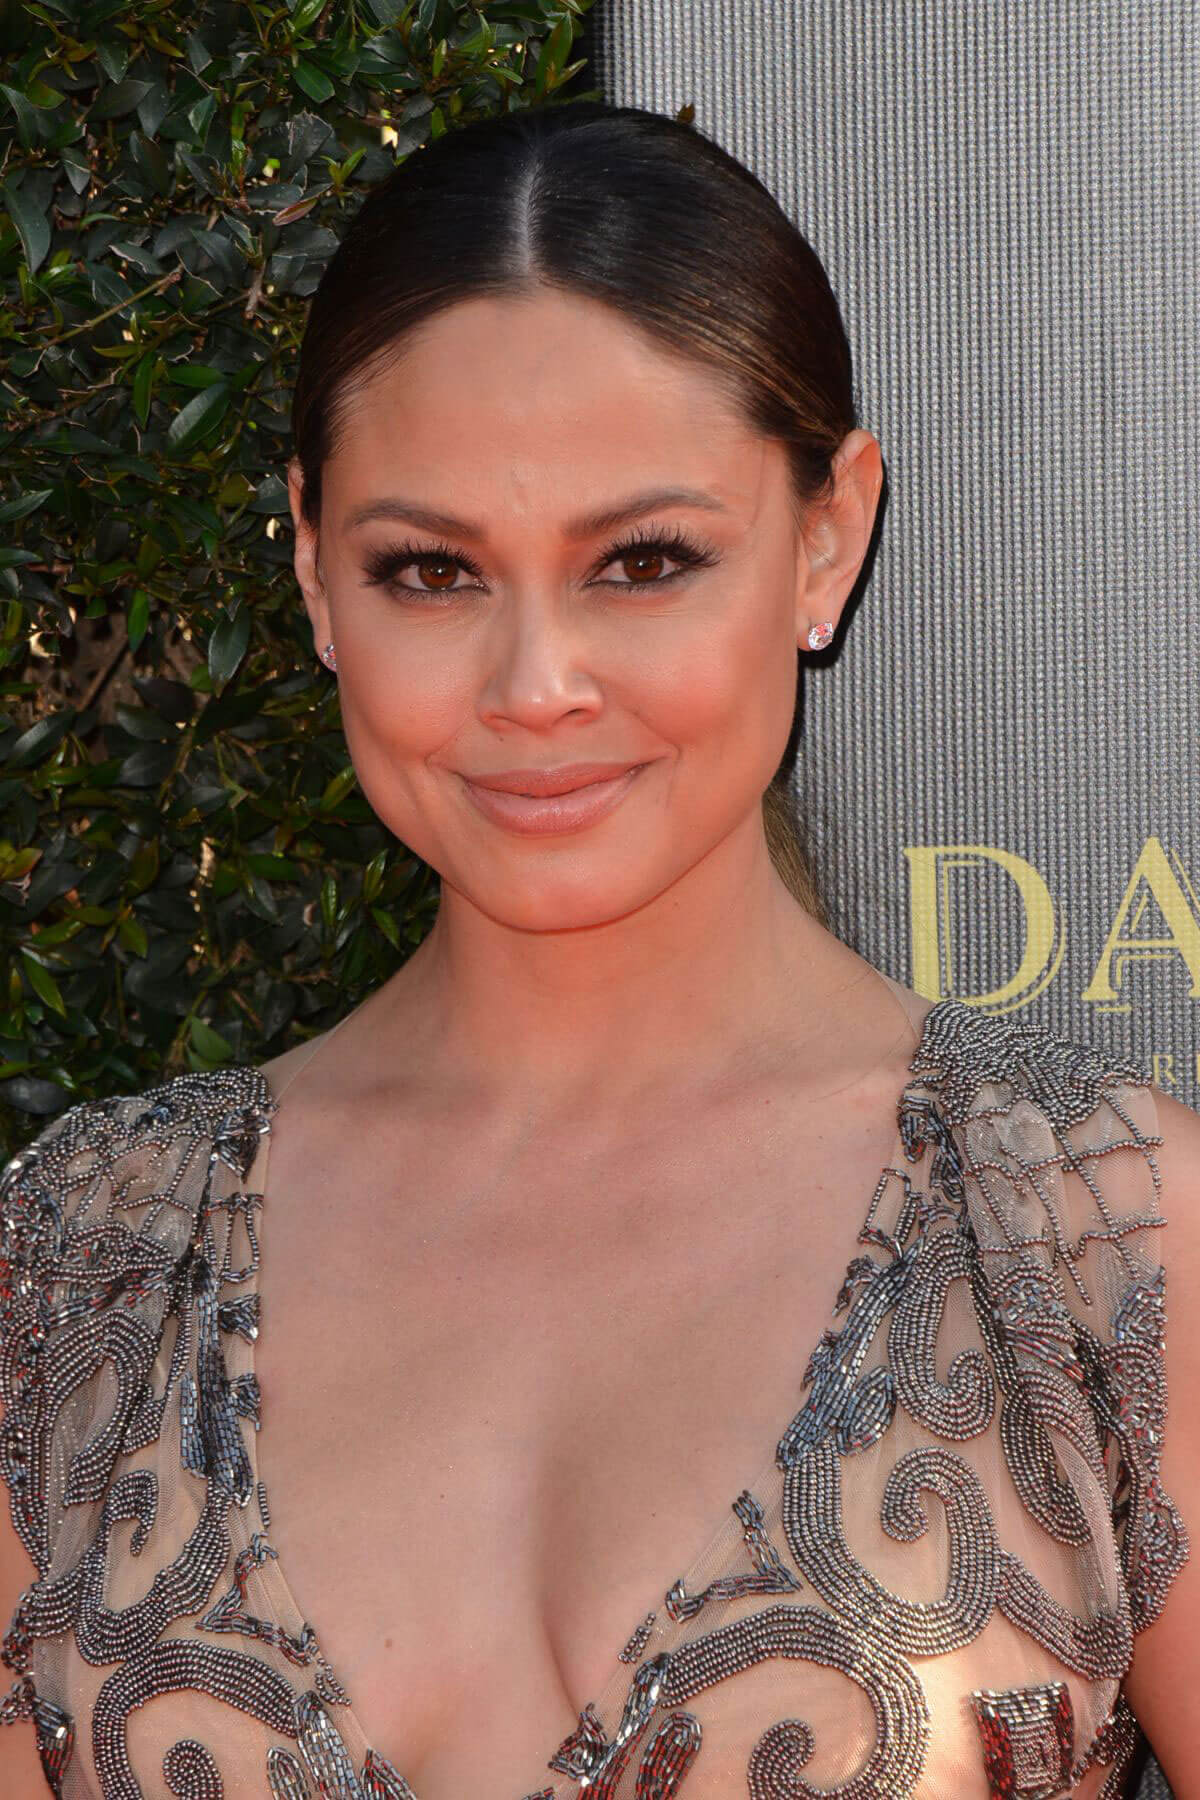 With vanessa lachey cleavage something